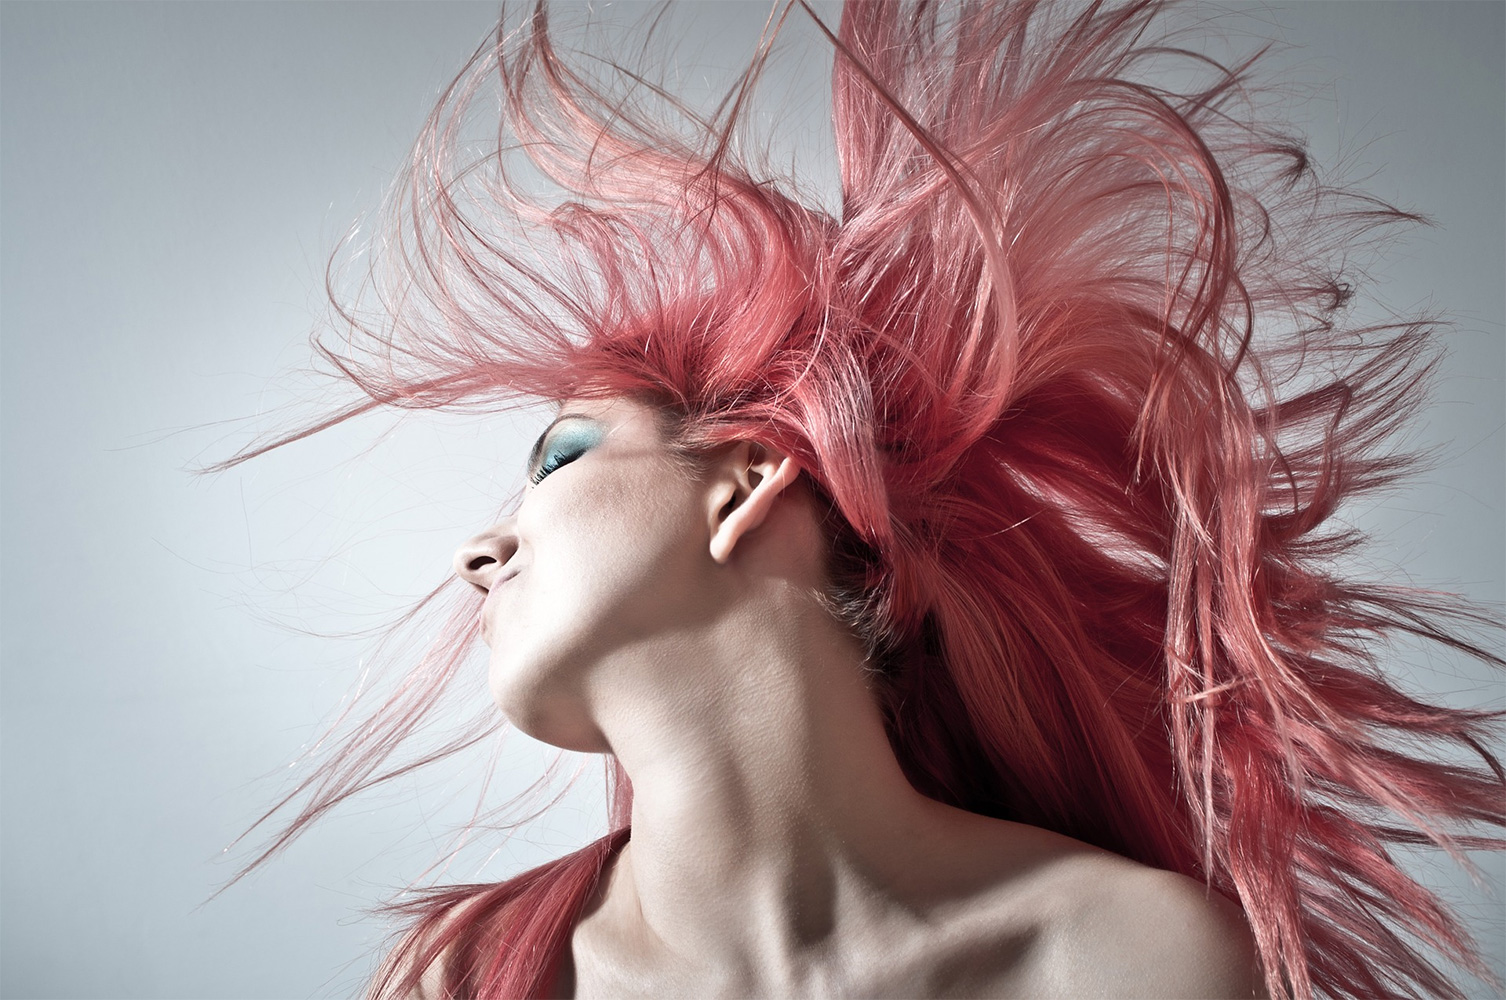 Can You Get An Allergic Reaction To Hair Dye?